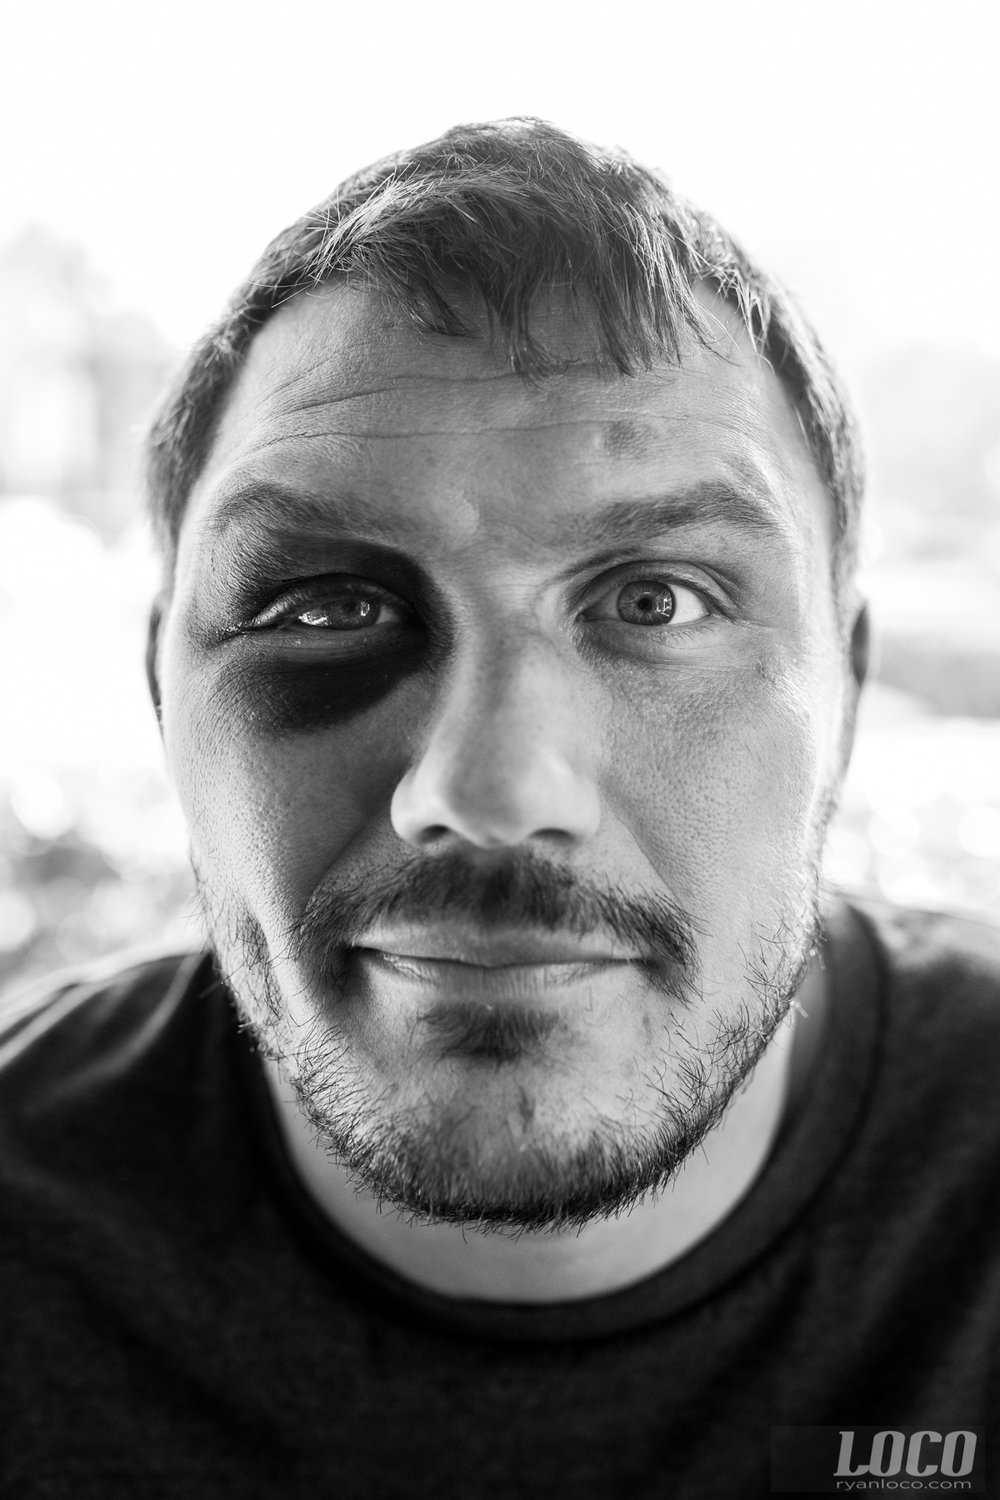 Portrait of Matt Mitrione after his fight with Travis Browne. Multiple eye pokes and a broken orbital bone will leave you with this sorta eye makeup.